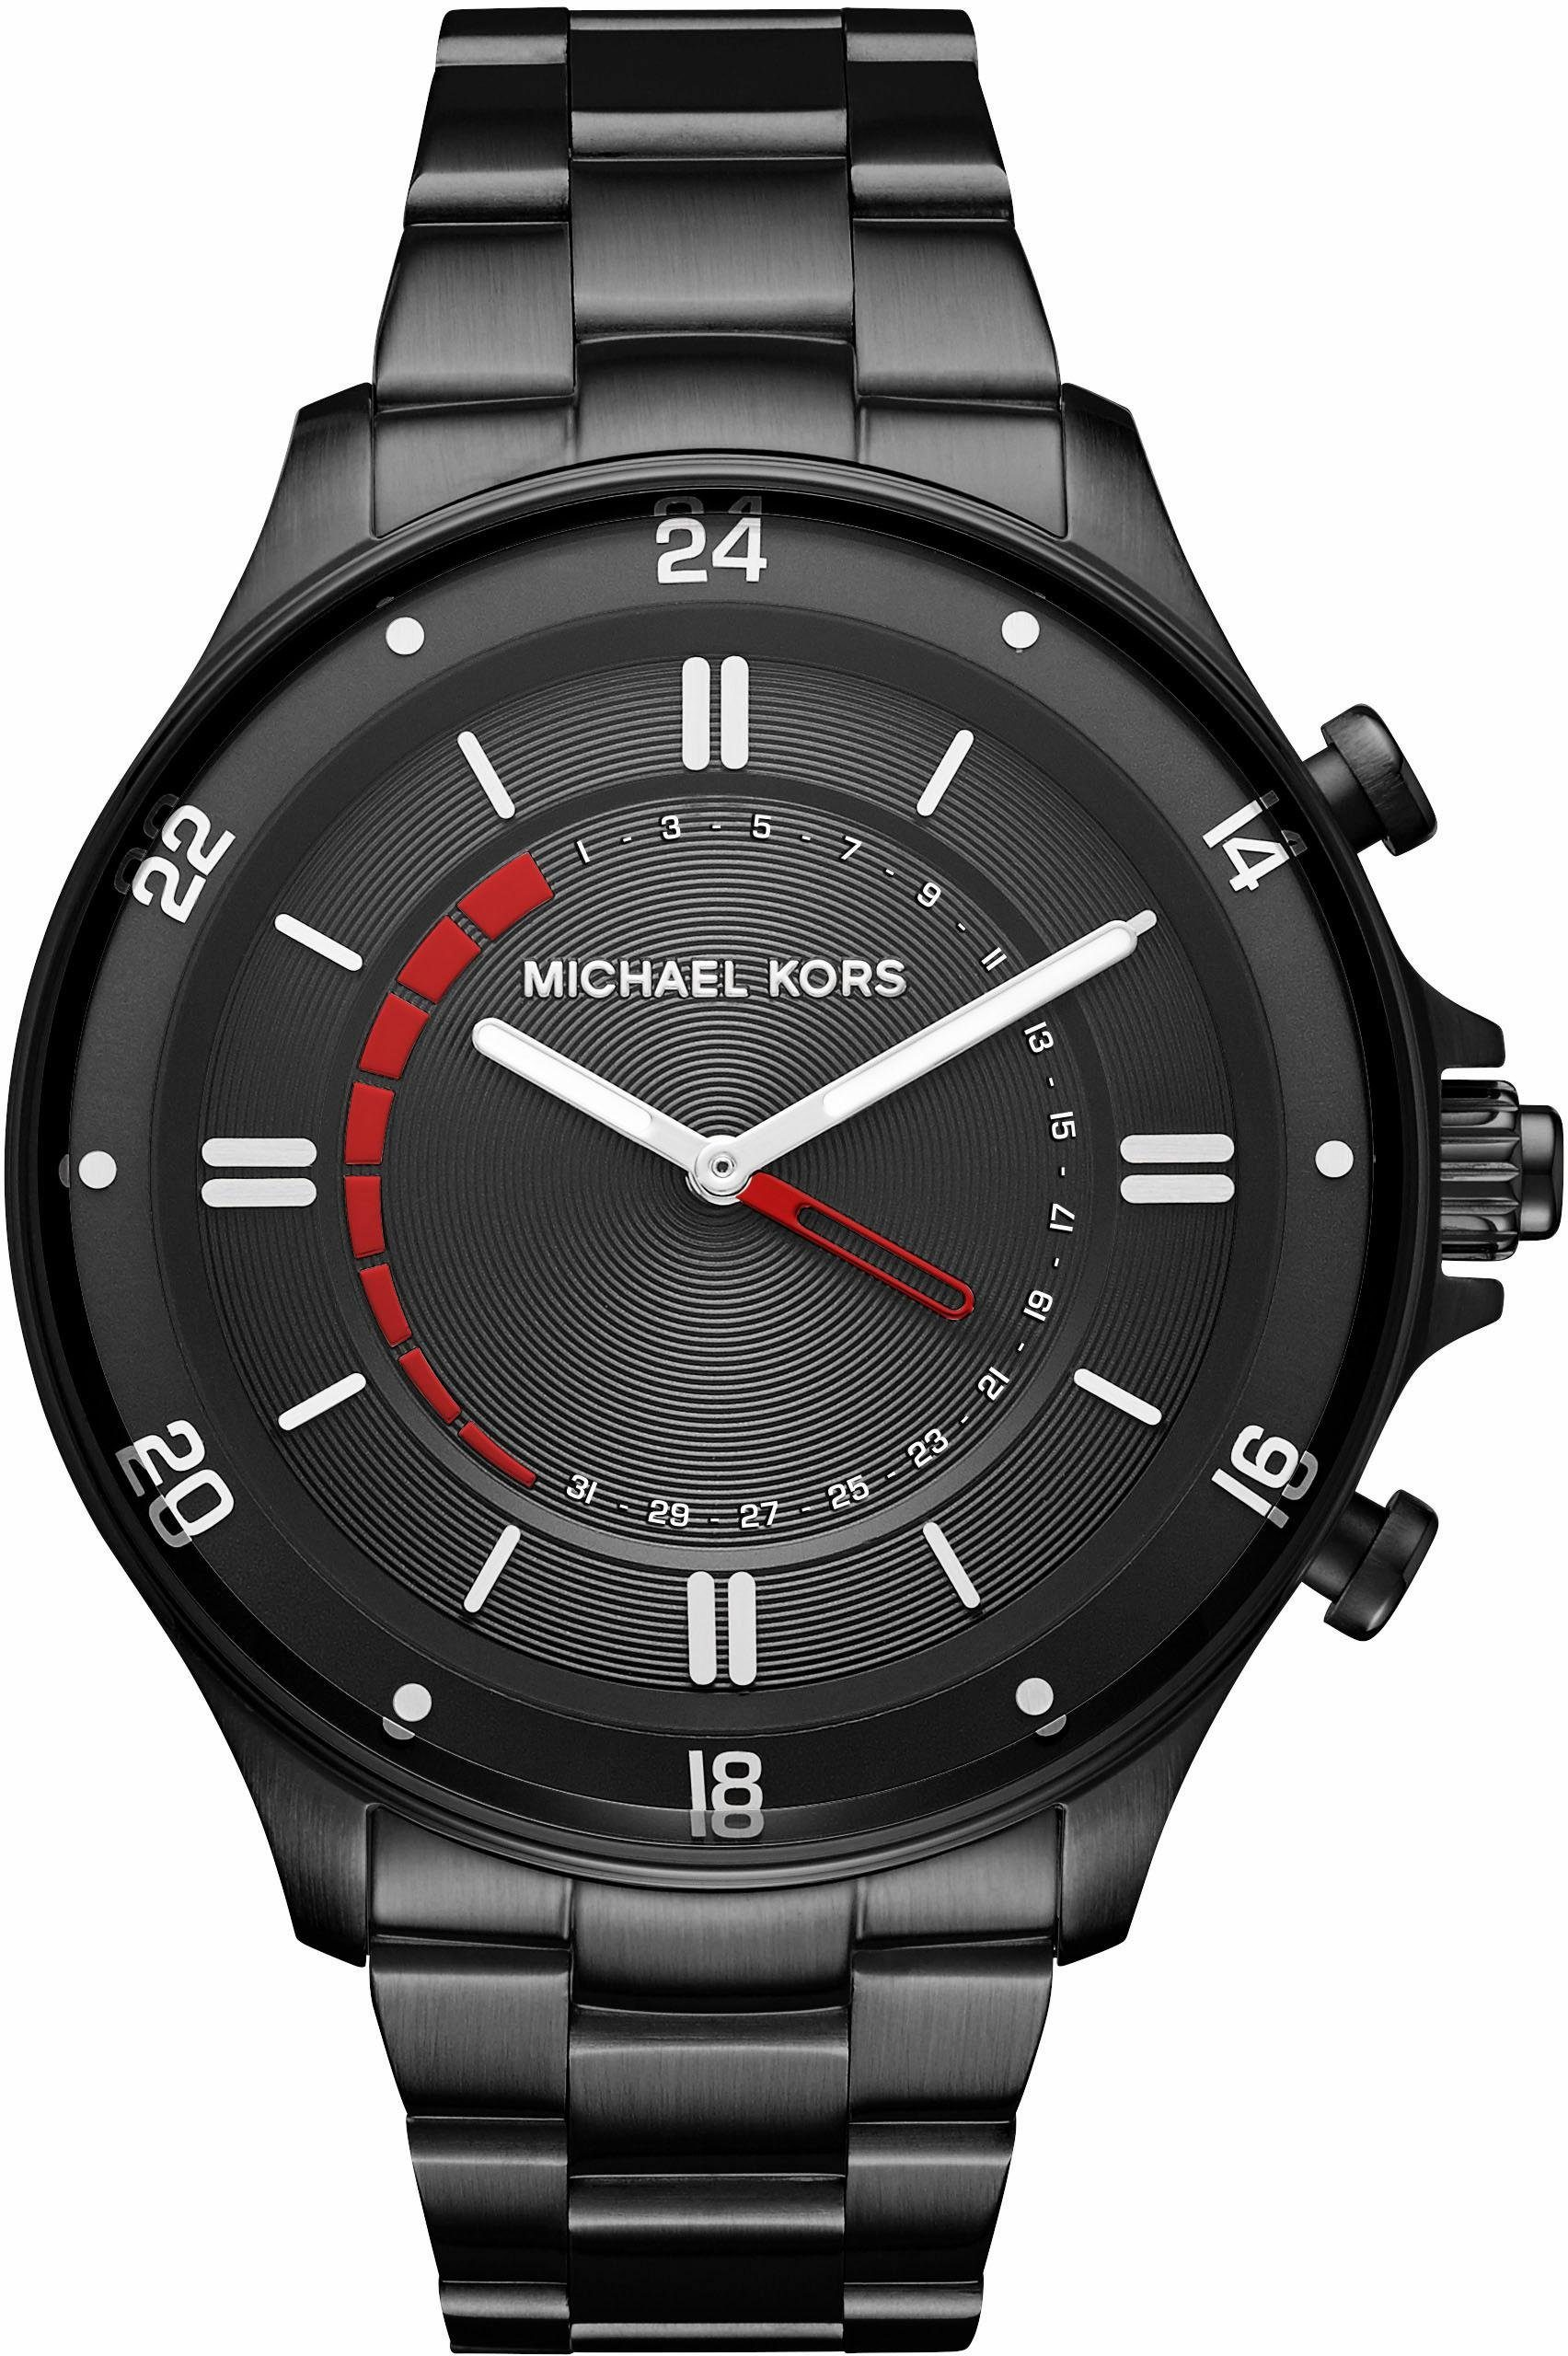 MICHAEL KORS ACCESS REID, MKT4015 Smartwatch (Android Wear)